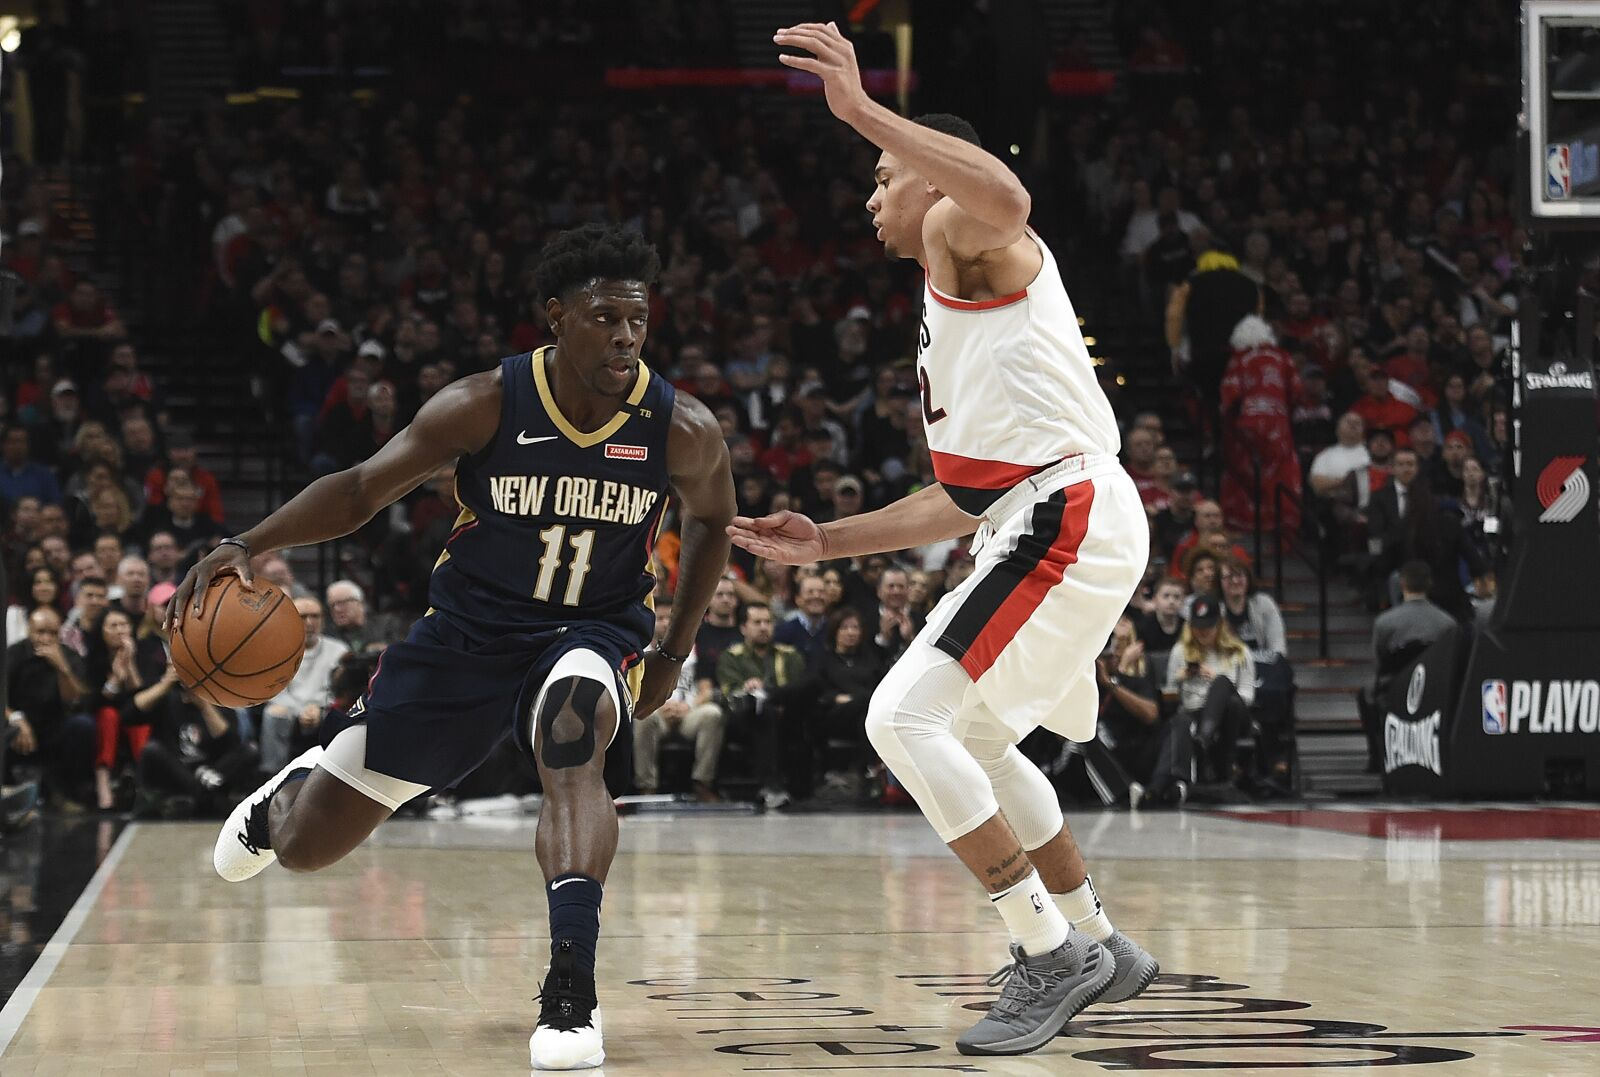 Pelicans Vs Trail Blazers Detail: Jrue Holiday Has The Pelicans In Position To Knock Off The